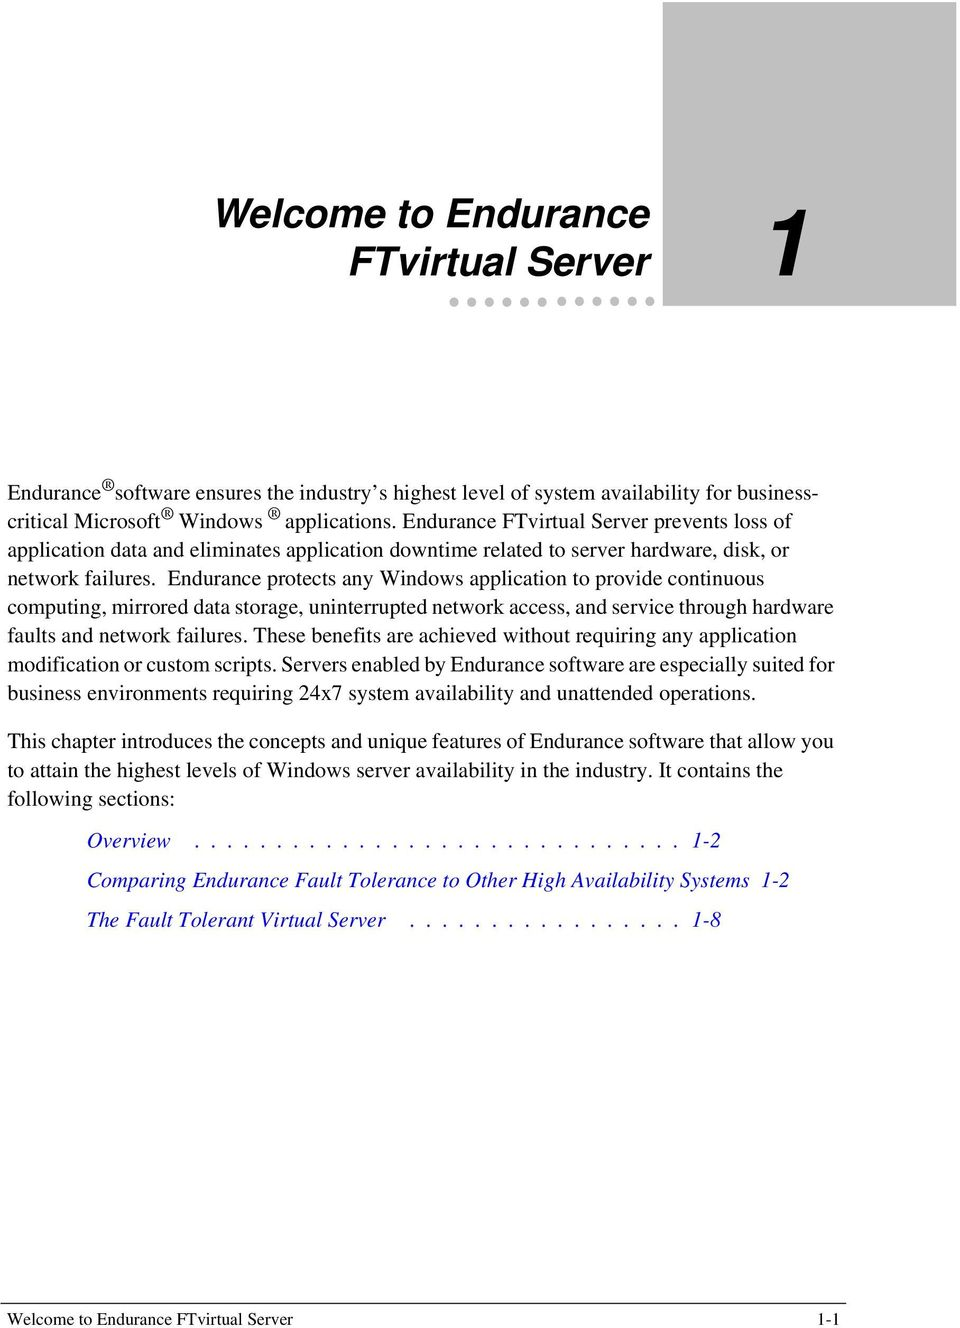 Endurance protects any Windows application to provide continuous computing, mirrored data storage, uninterrupted network access, and service through hardware faults and network failures.